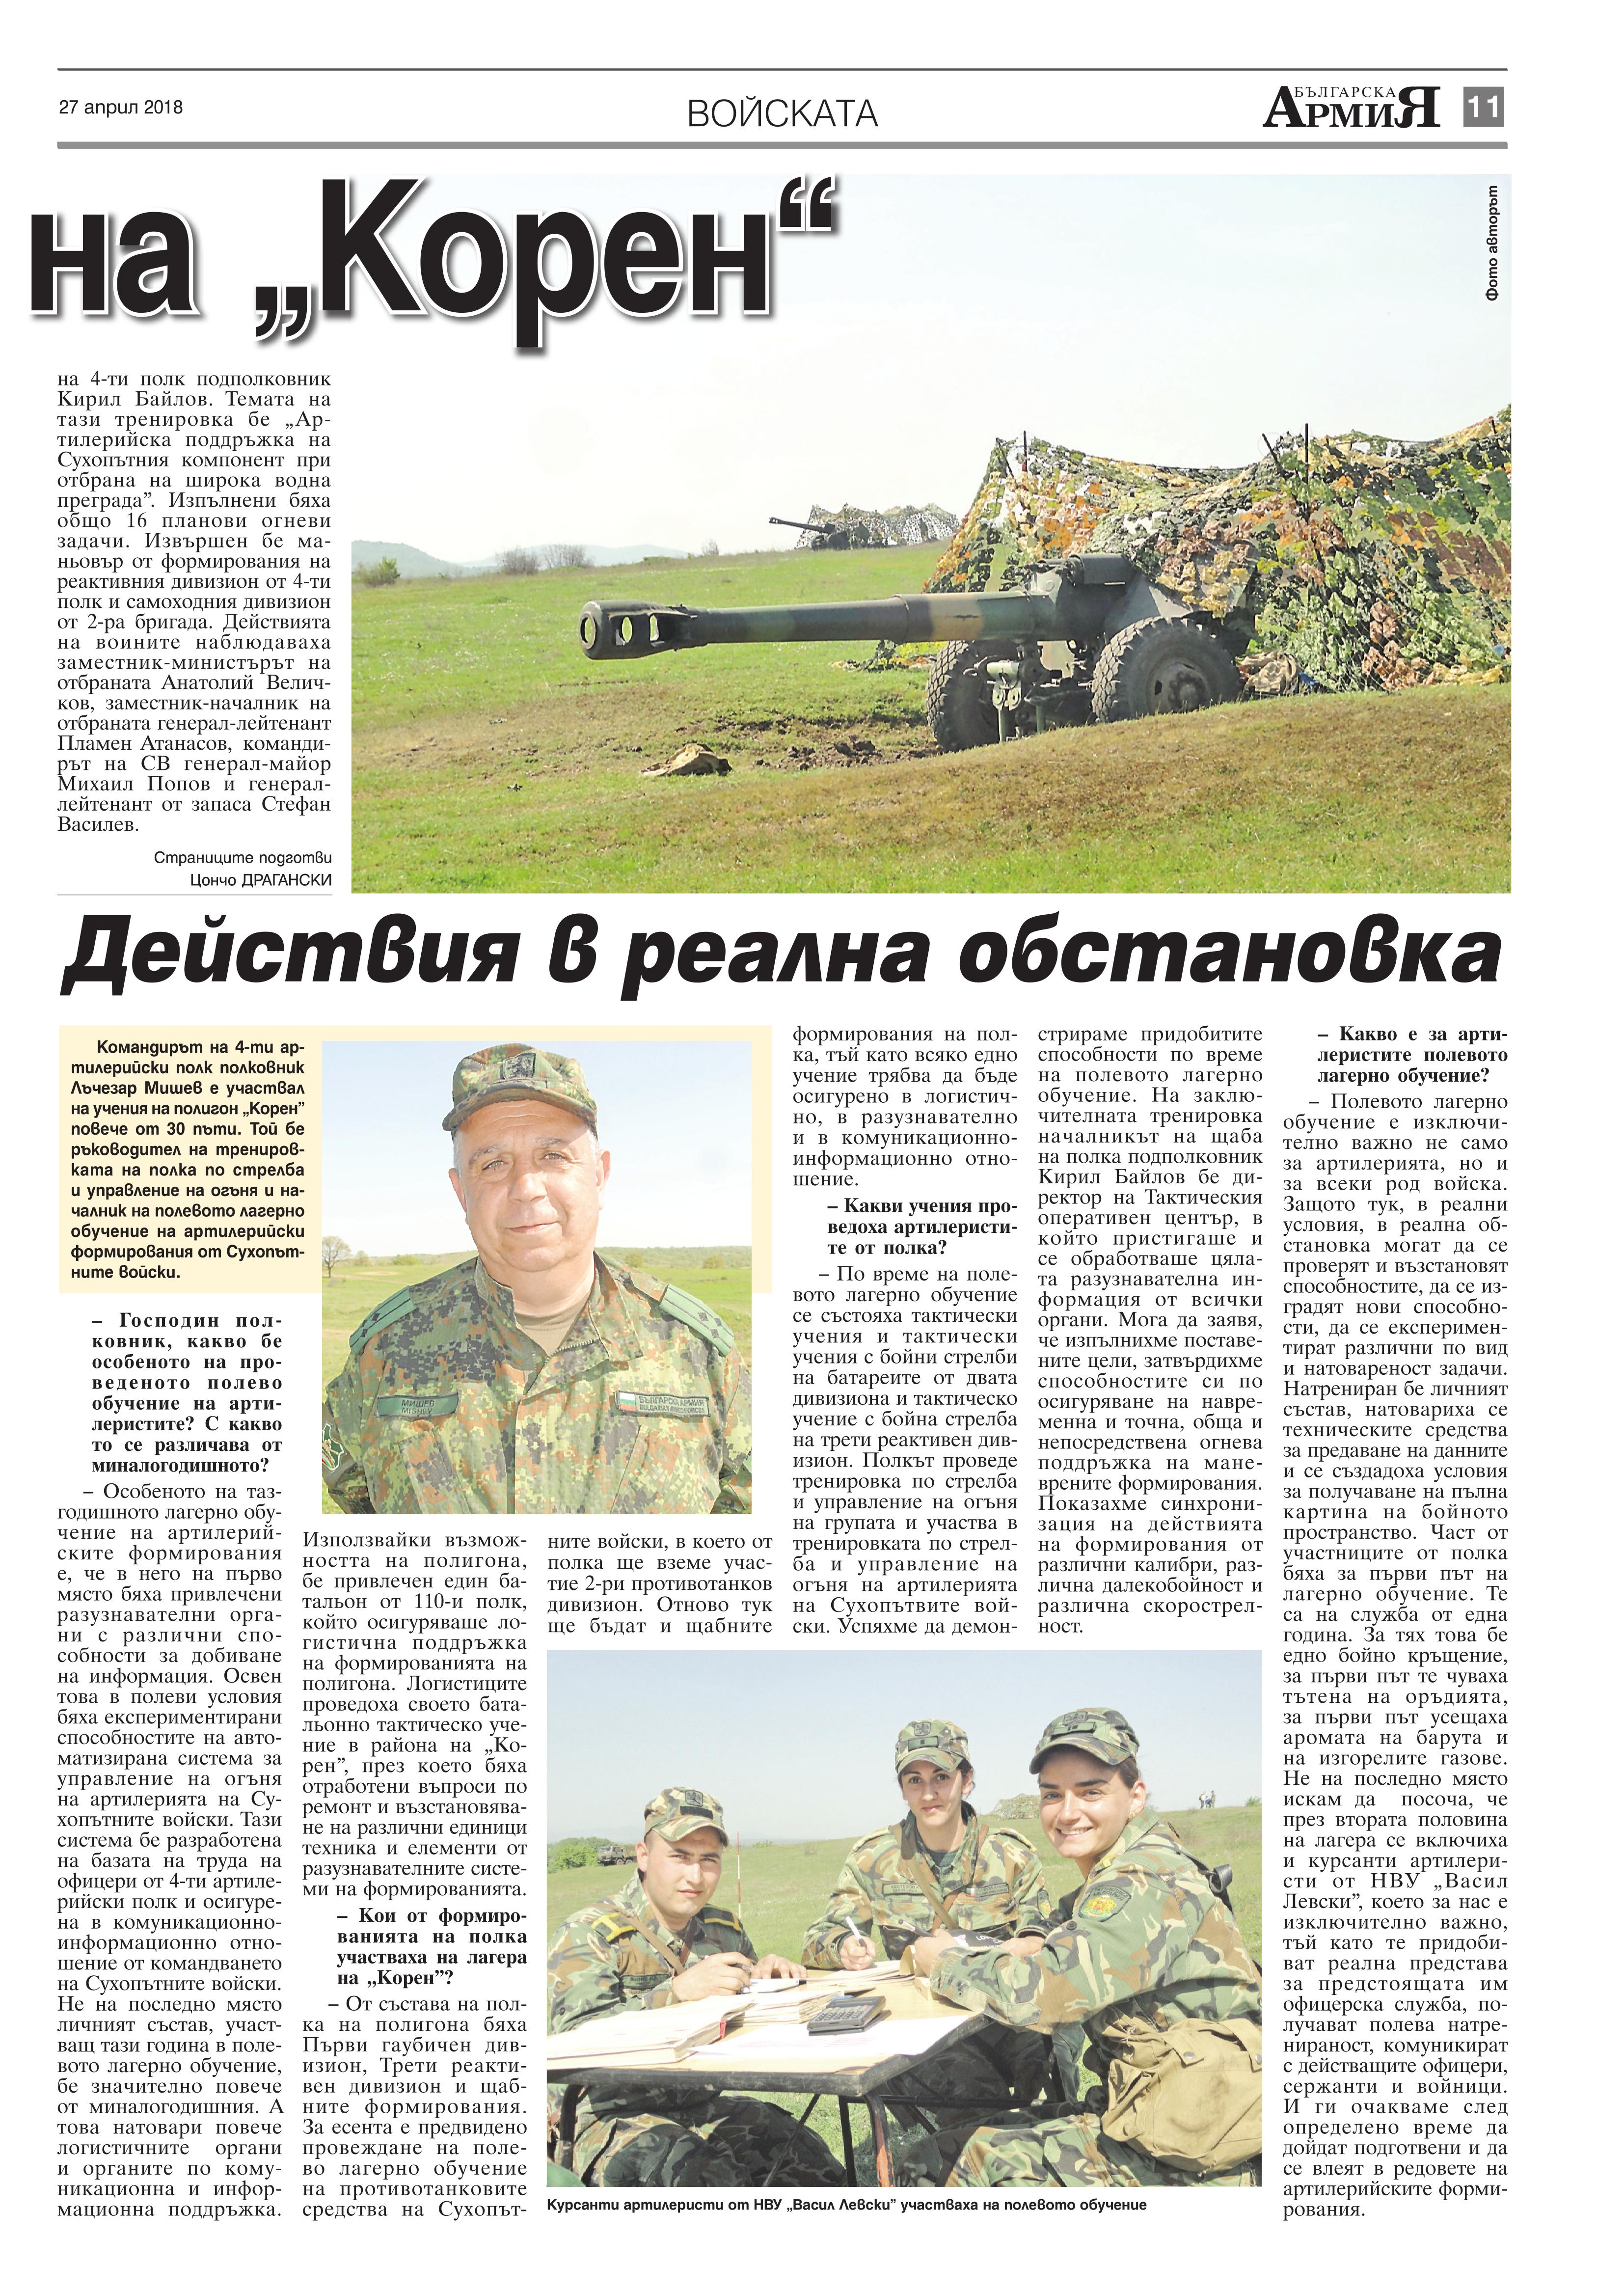 http://armymedia.bg/wp-content/uploads/2015/06/11.page1_-49.jpg